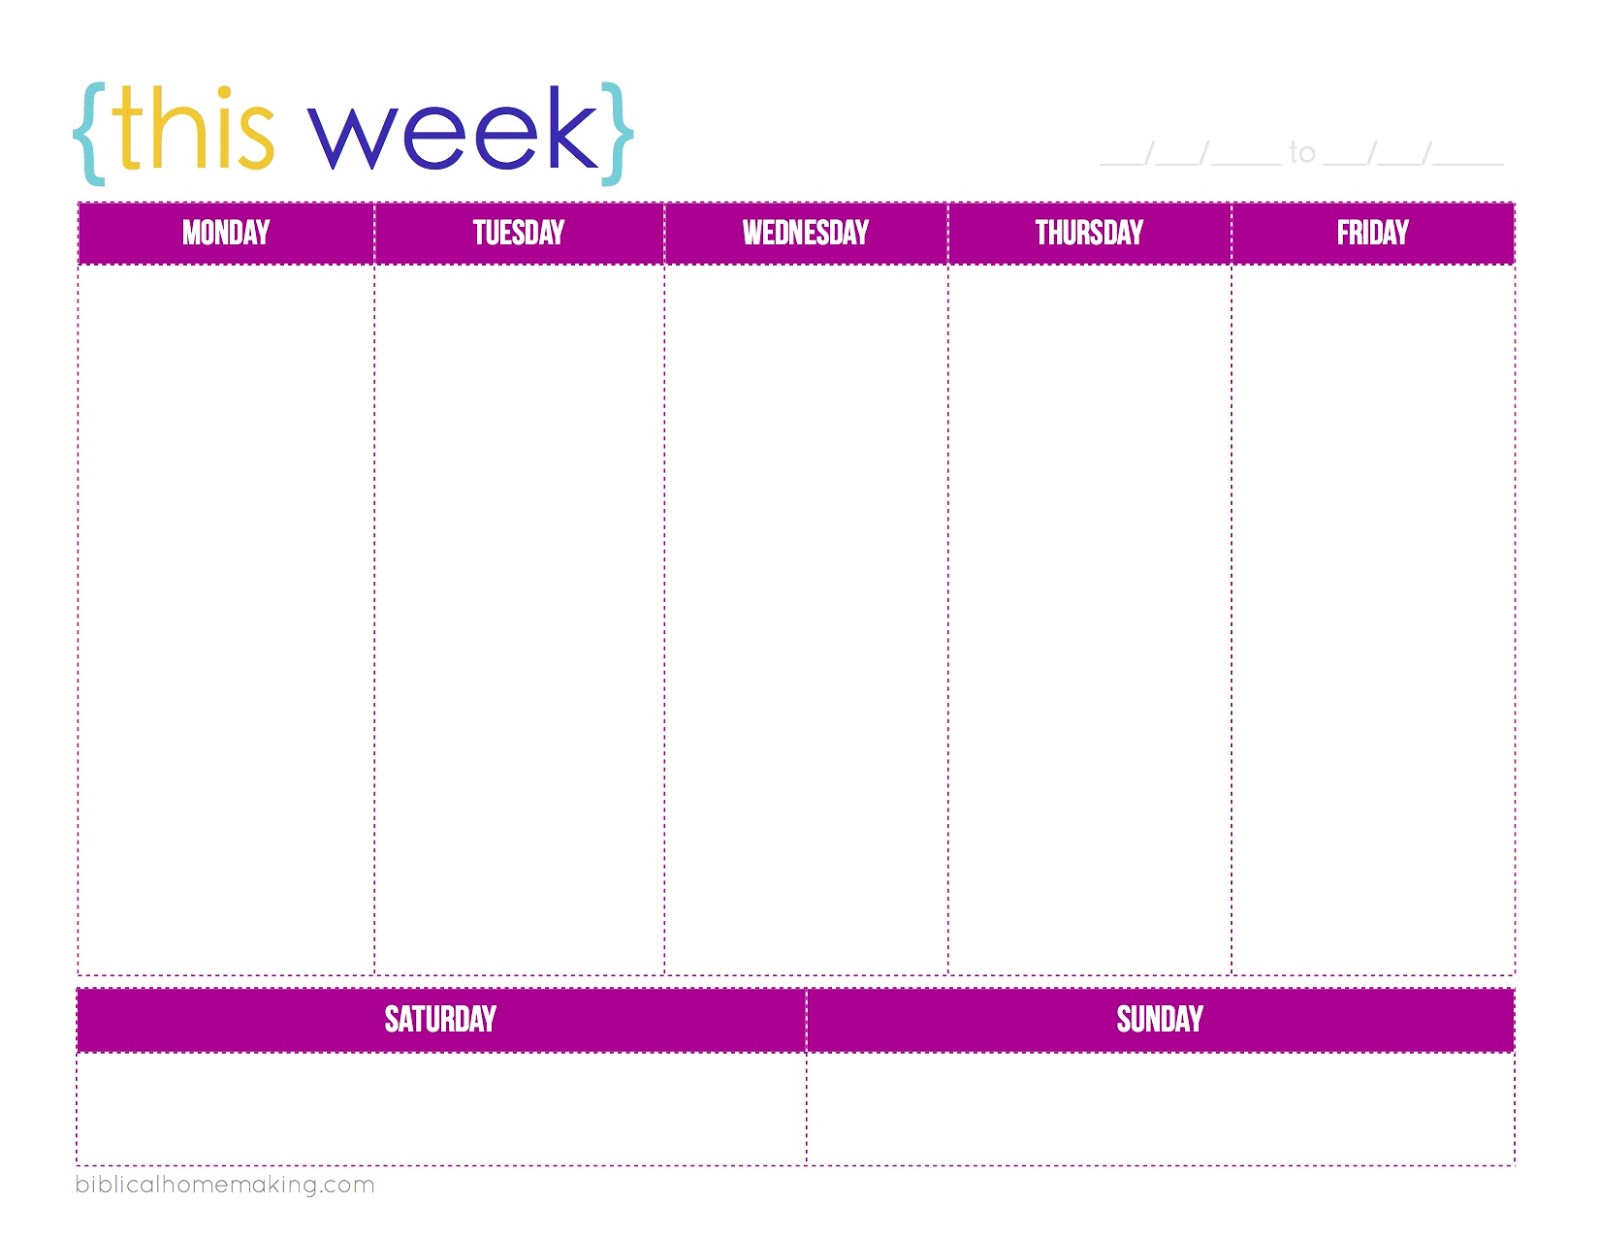 Blank Weekly Alendar Monday To Friday Through Template Word Free throughout Weekly Blank Calendar Monday Through Friday